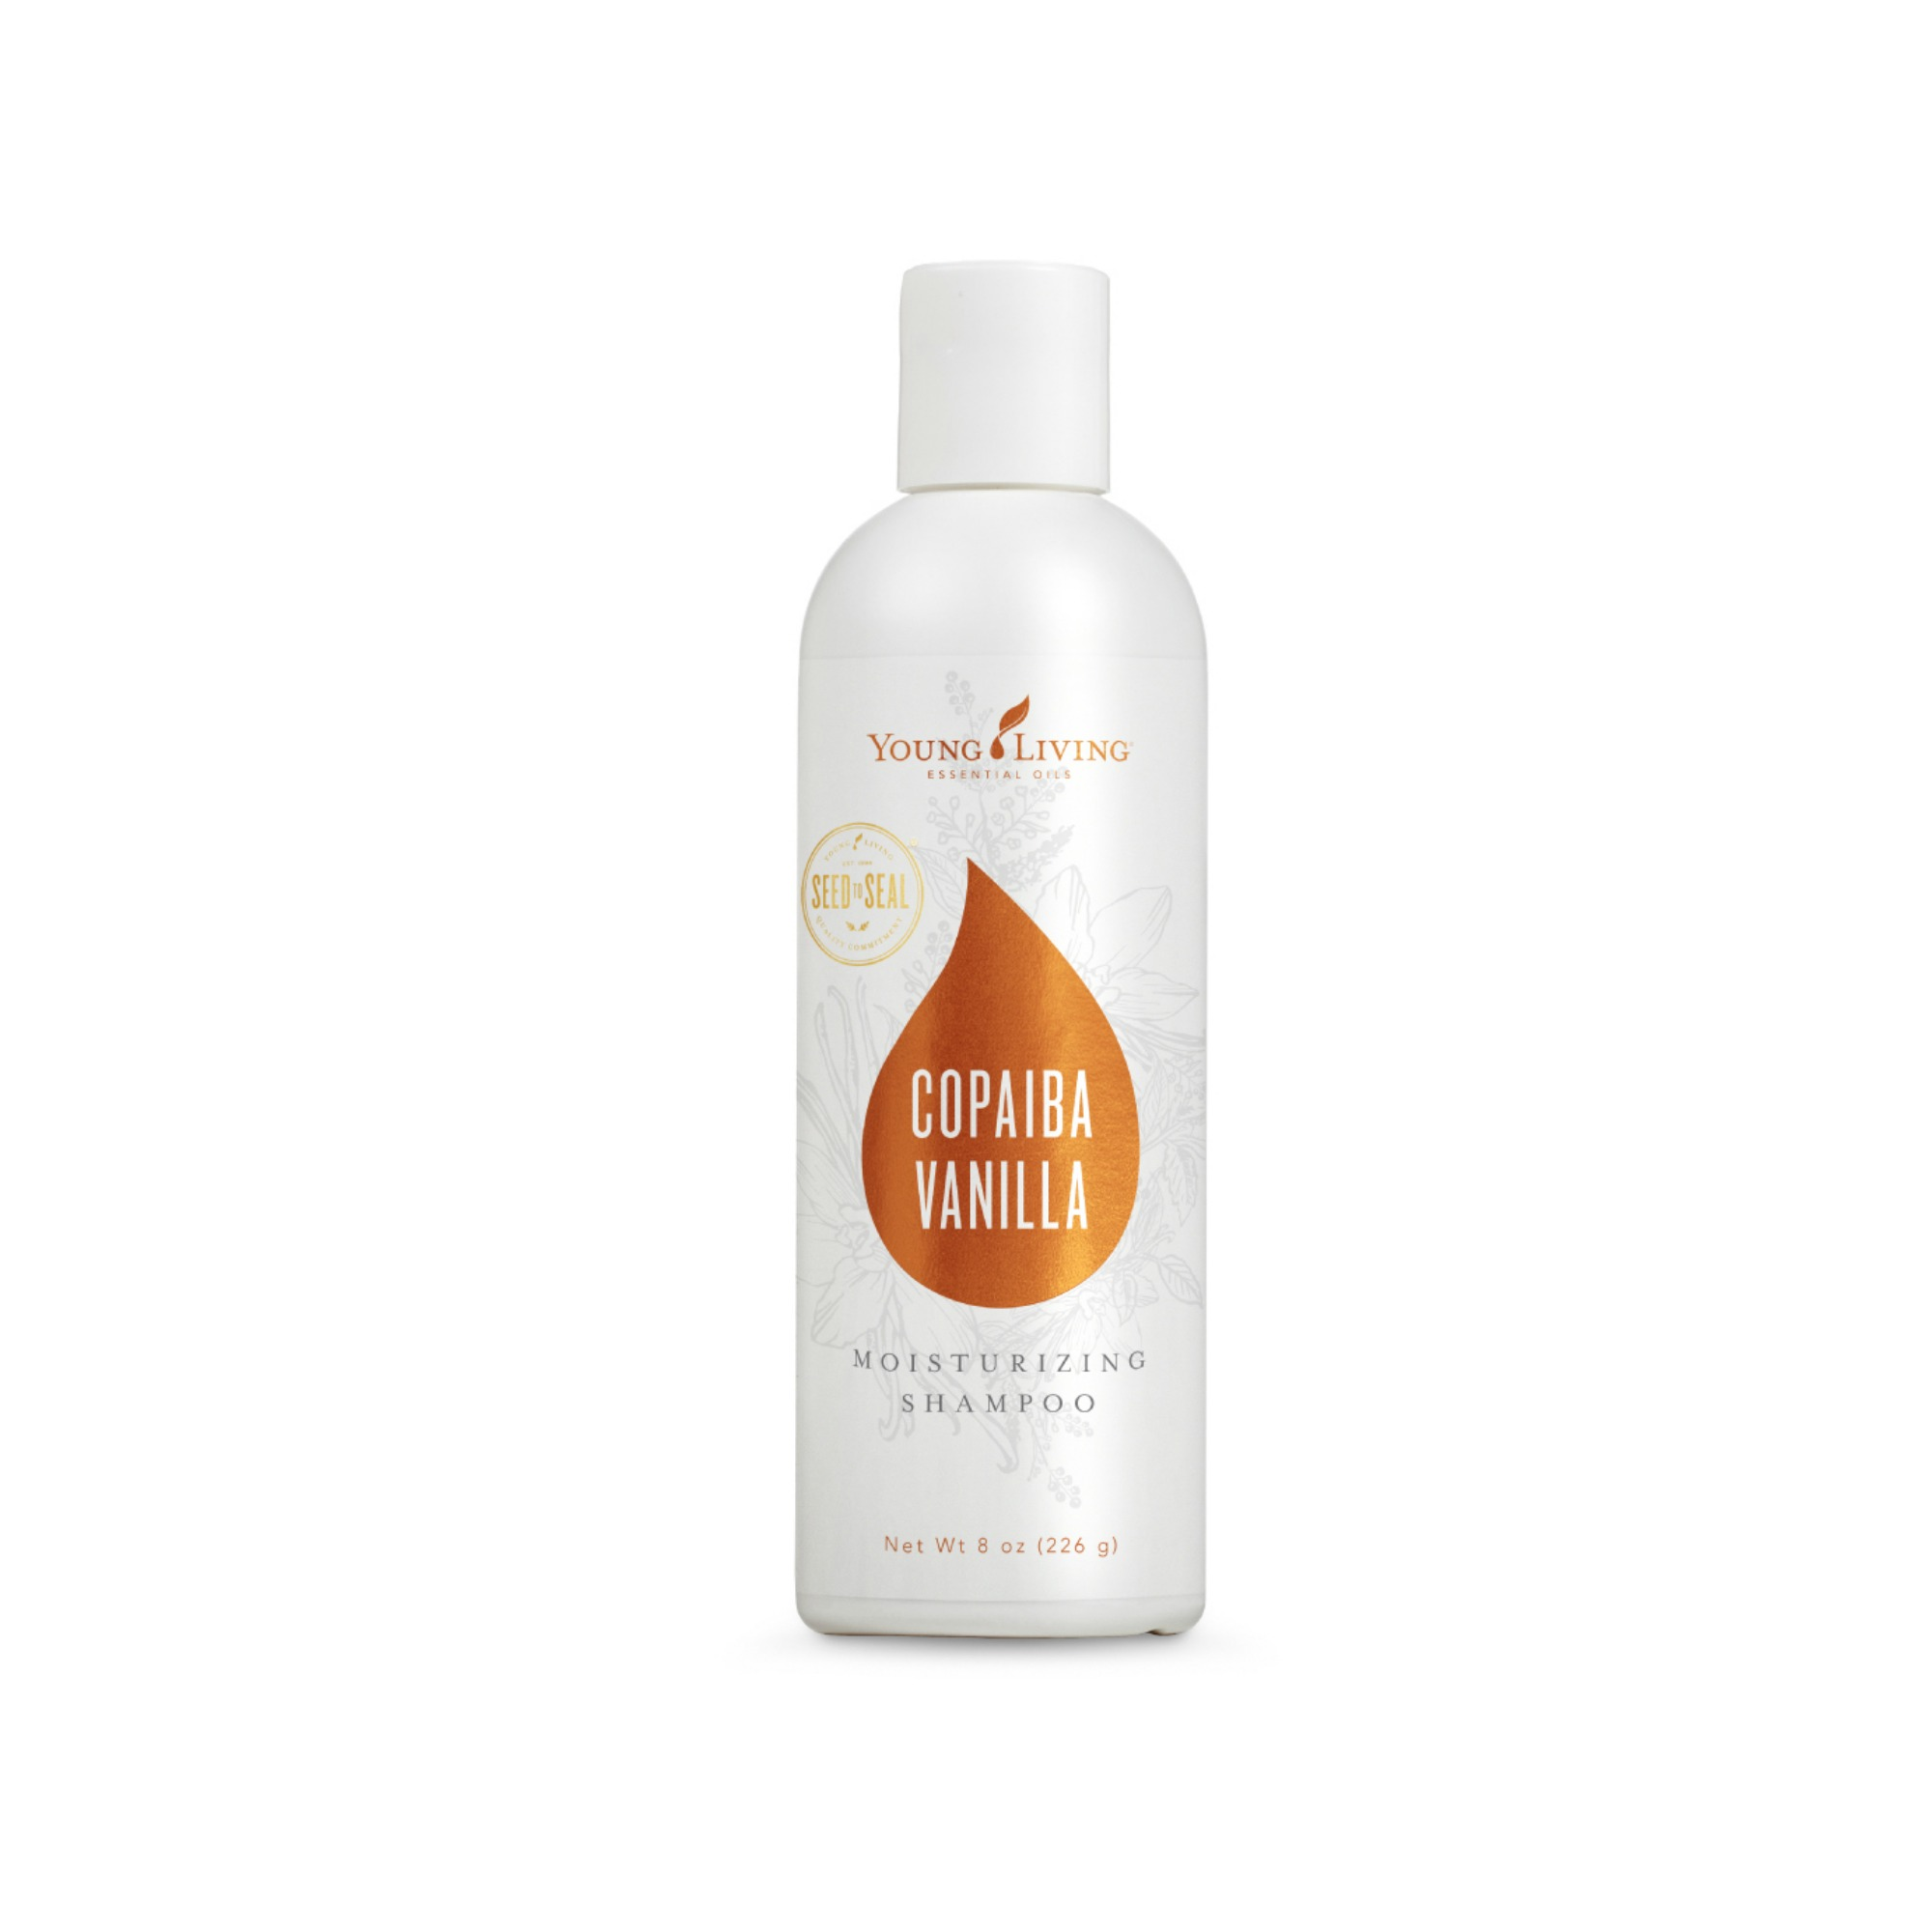 COPAIBA VANILLA SHAMPOO    Copaiba Vanilla Moisturizing Shampoo is a rich, hydrating cleanser for dry or damaged hair. With no hidden synthetic ingredients or harmful chemicals, this shampoo is one that is not only safe but effective. It has a warm, fresh smell with a hint of vanilla sweetness, leaving your pet smelling amazing after a bath.   Click here   to learn more about this product.